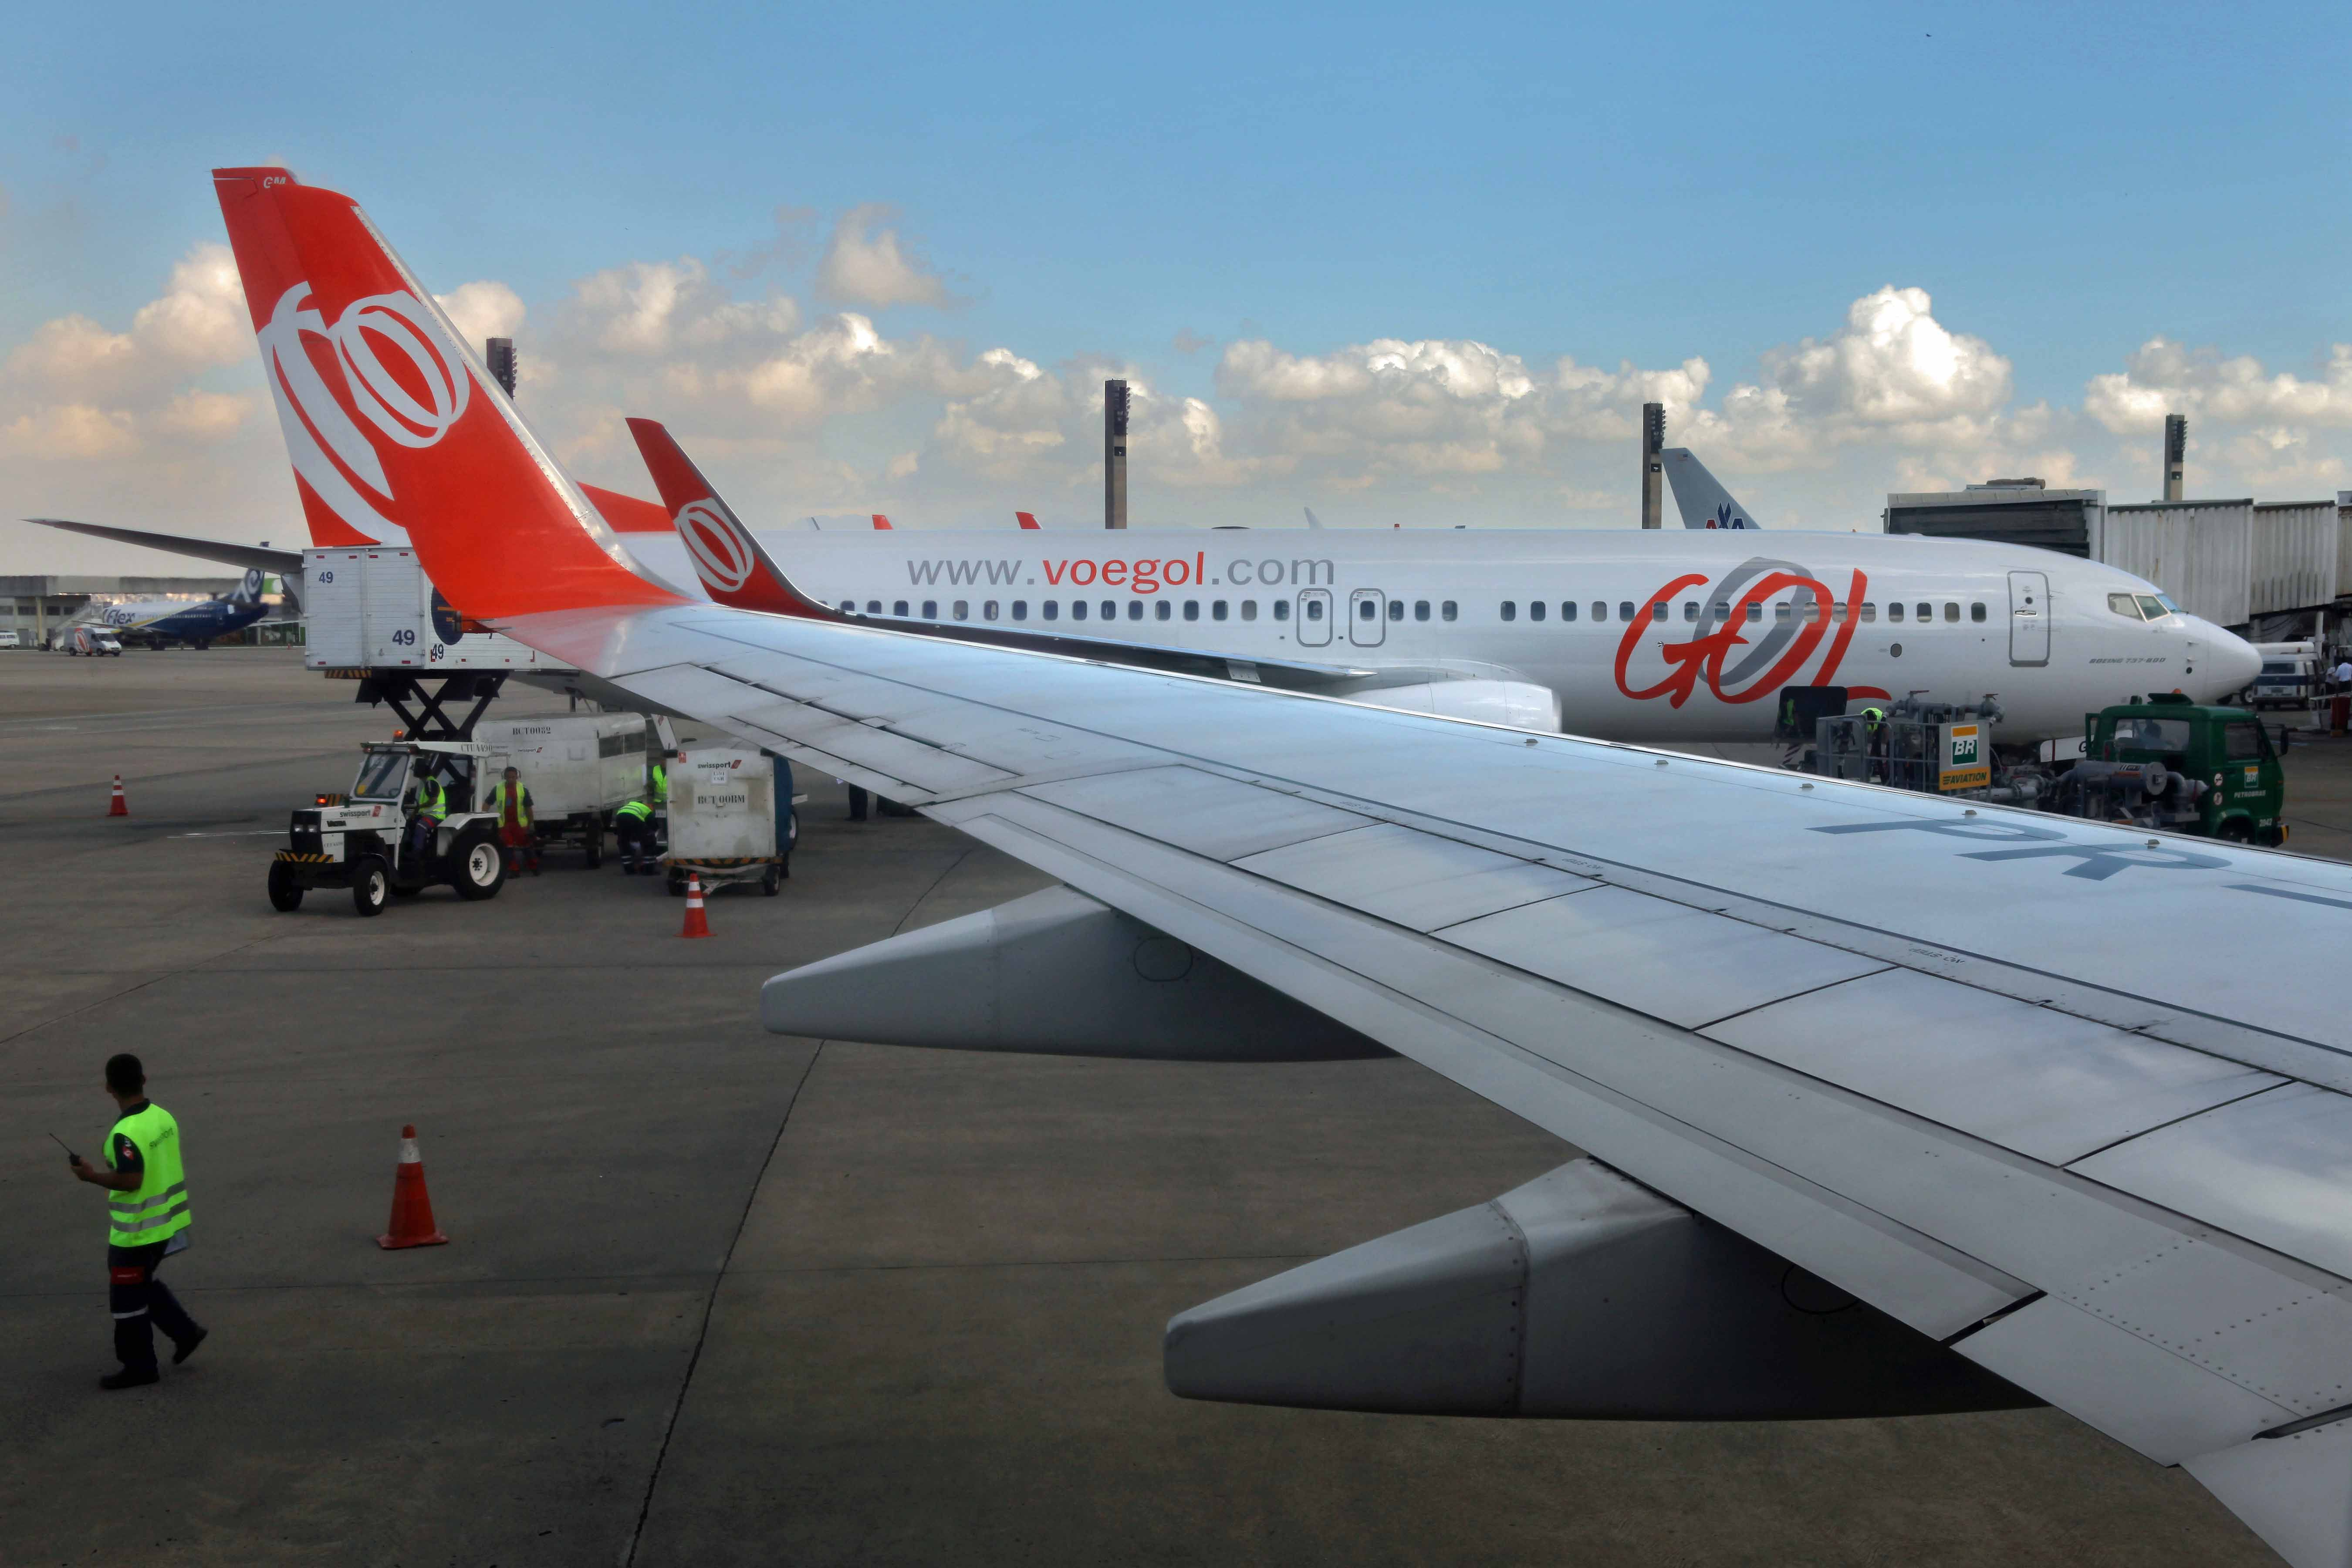 GOL is a low cost carrier operating in Brazil.